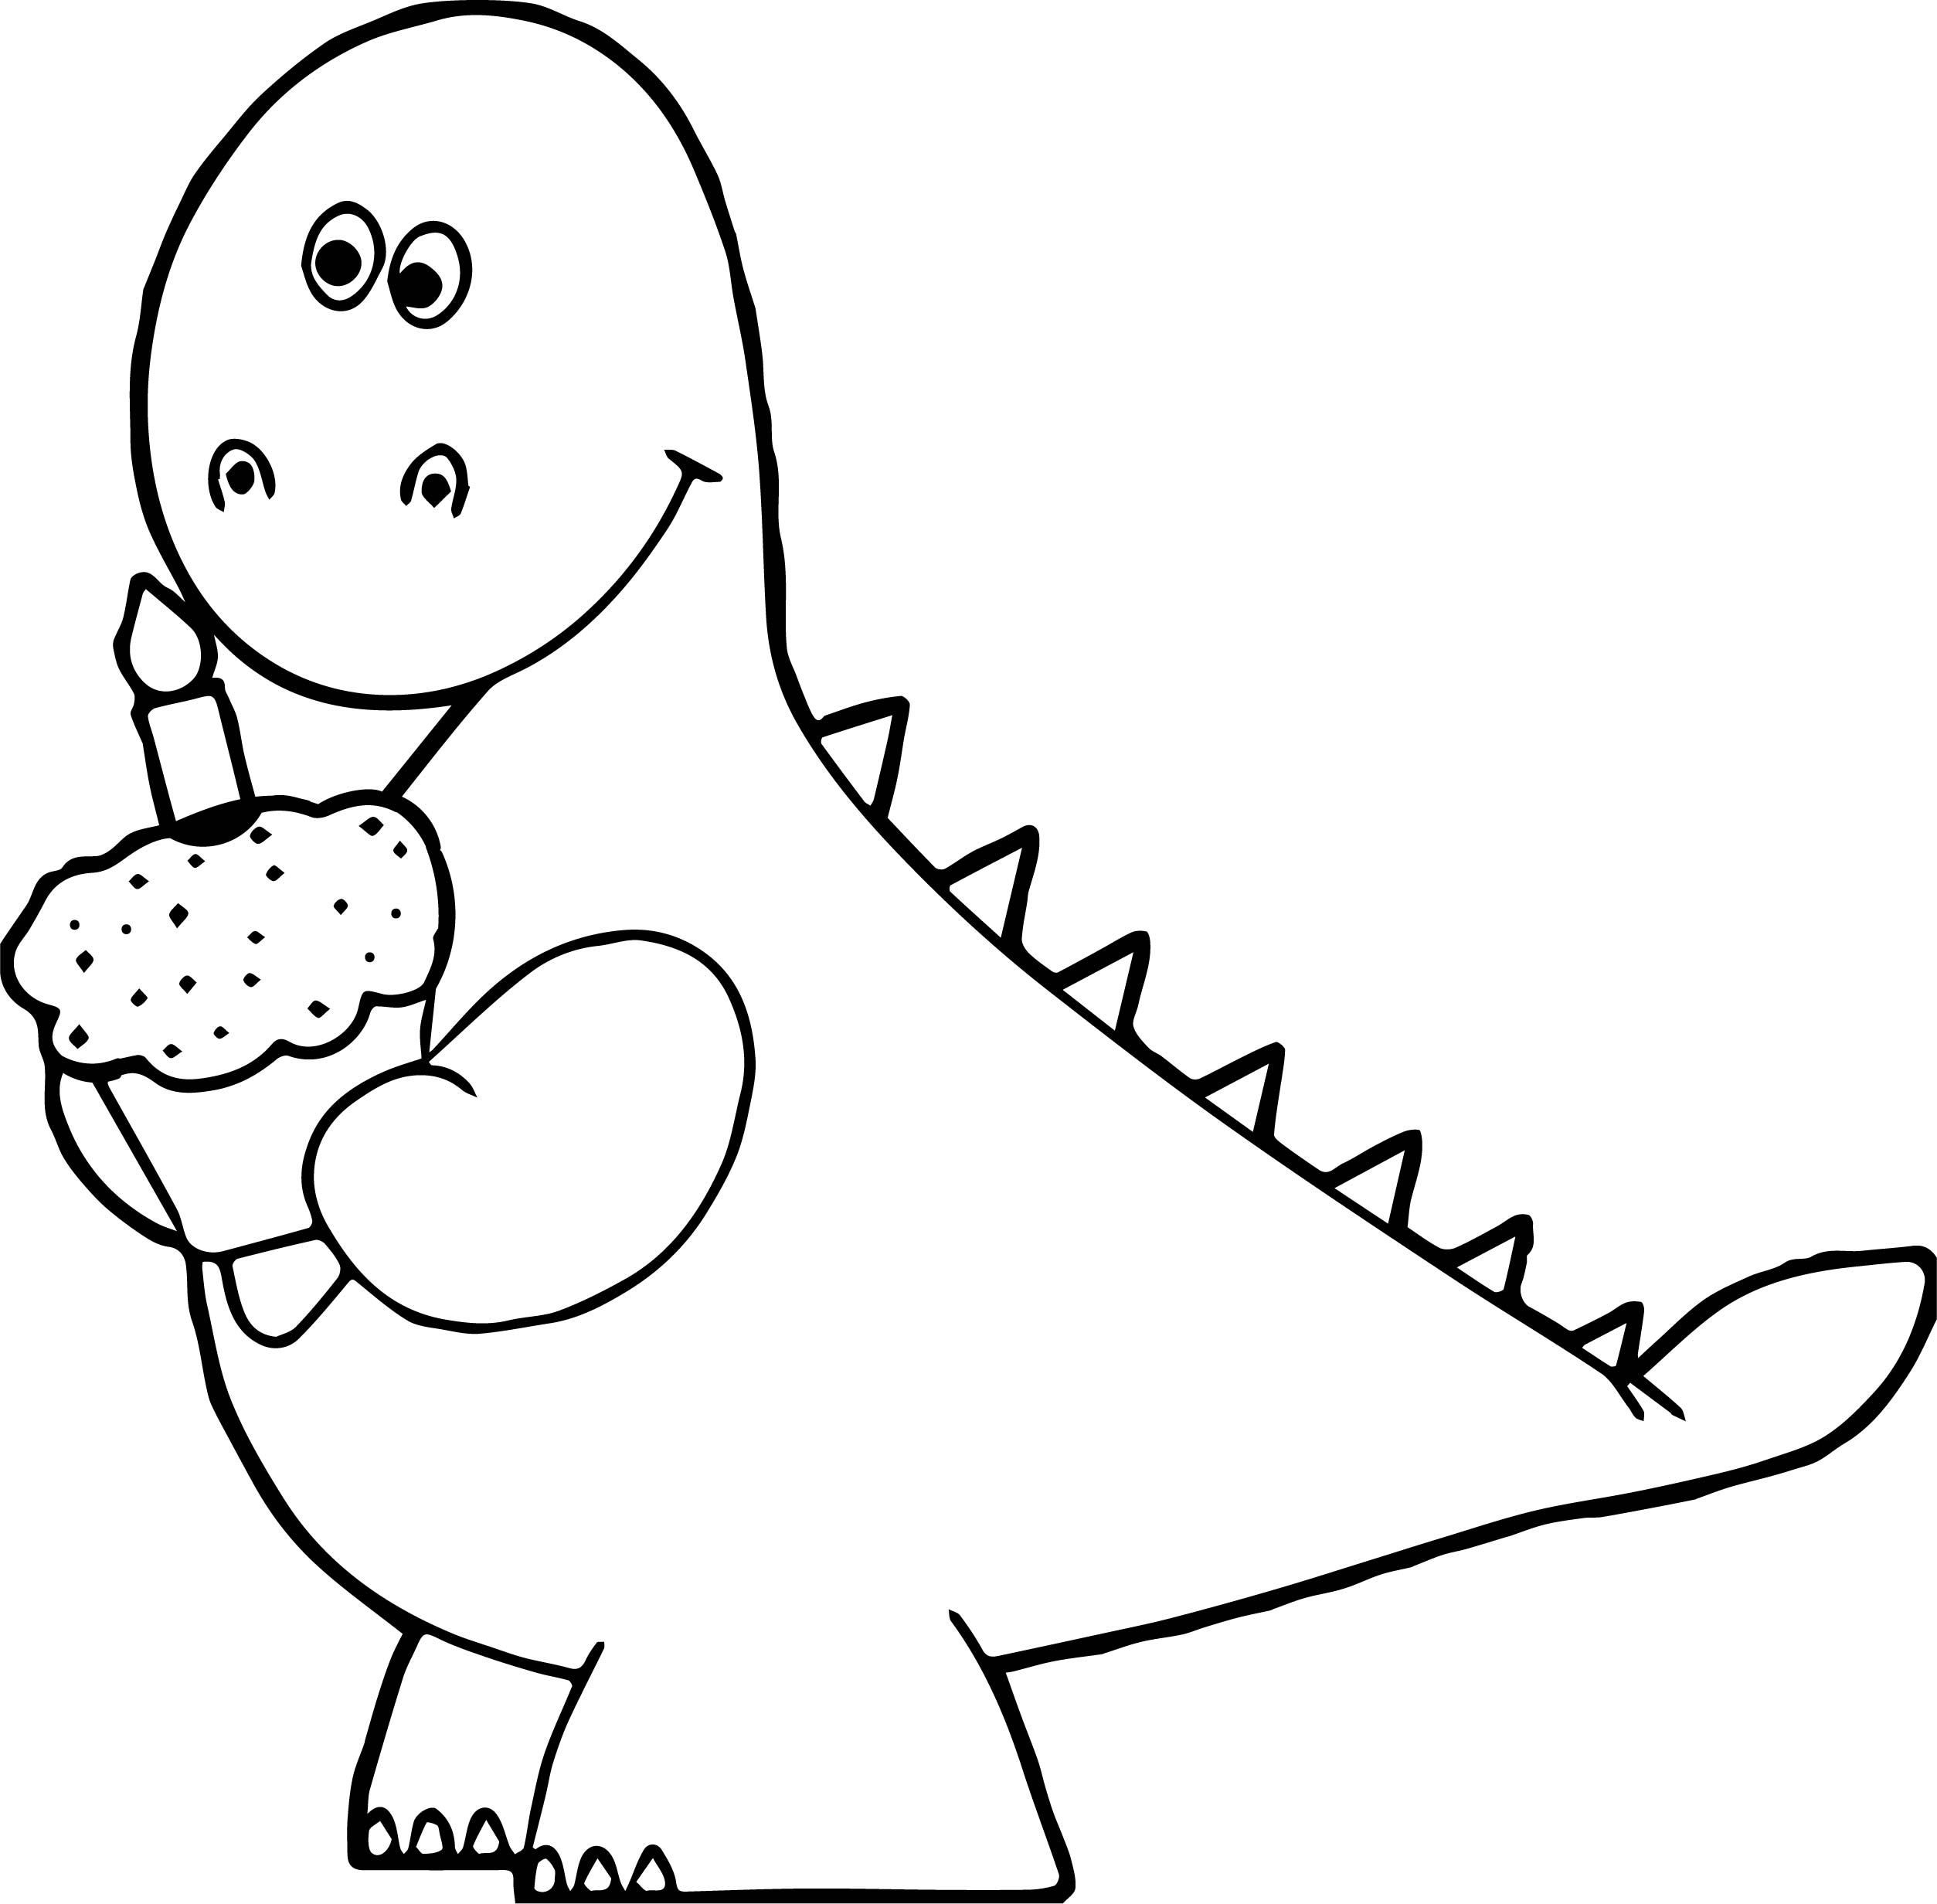 dinosaur birthday coloring pages ; birthday%2520cupcake%2520coloring%2520page%2520;%2520Orange-Dinosaur-Birthday-Cupcake-Coloring-Page